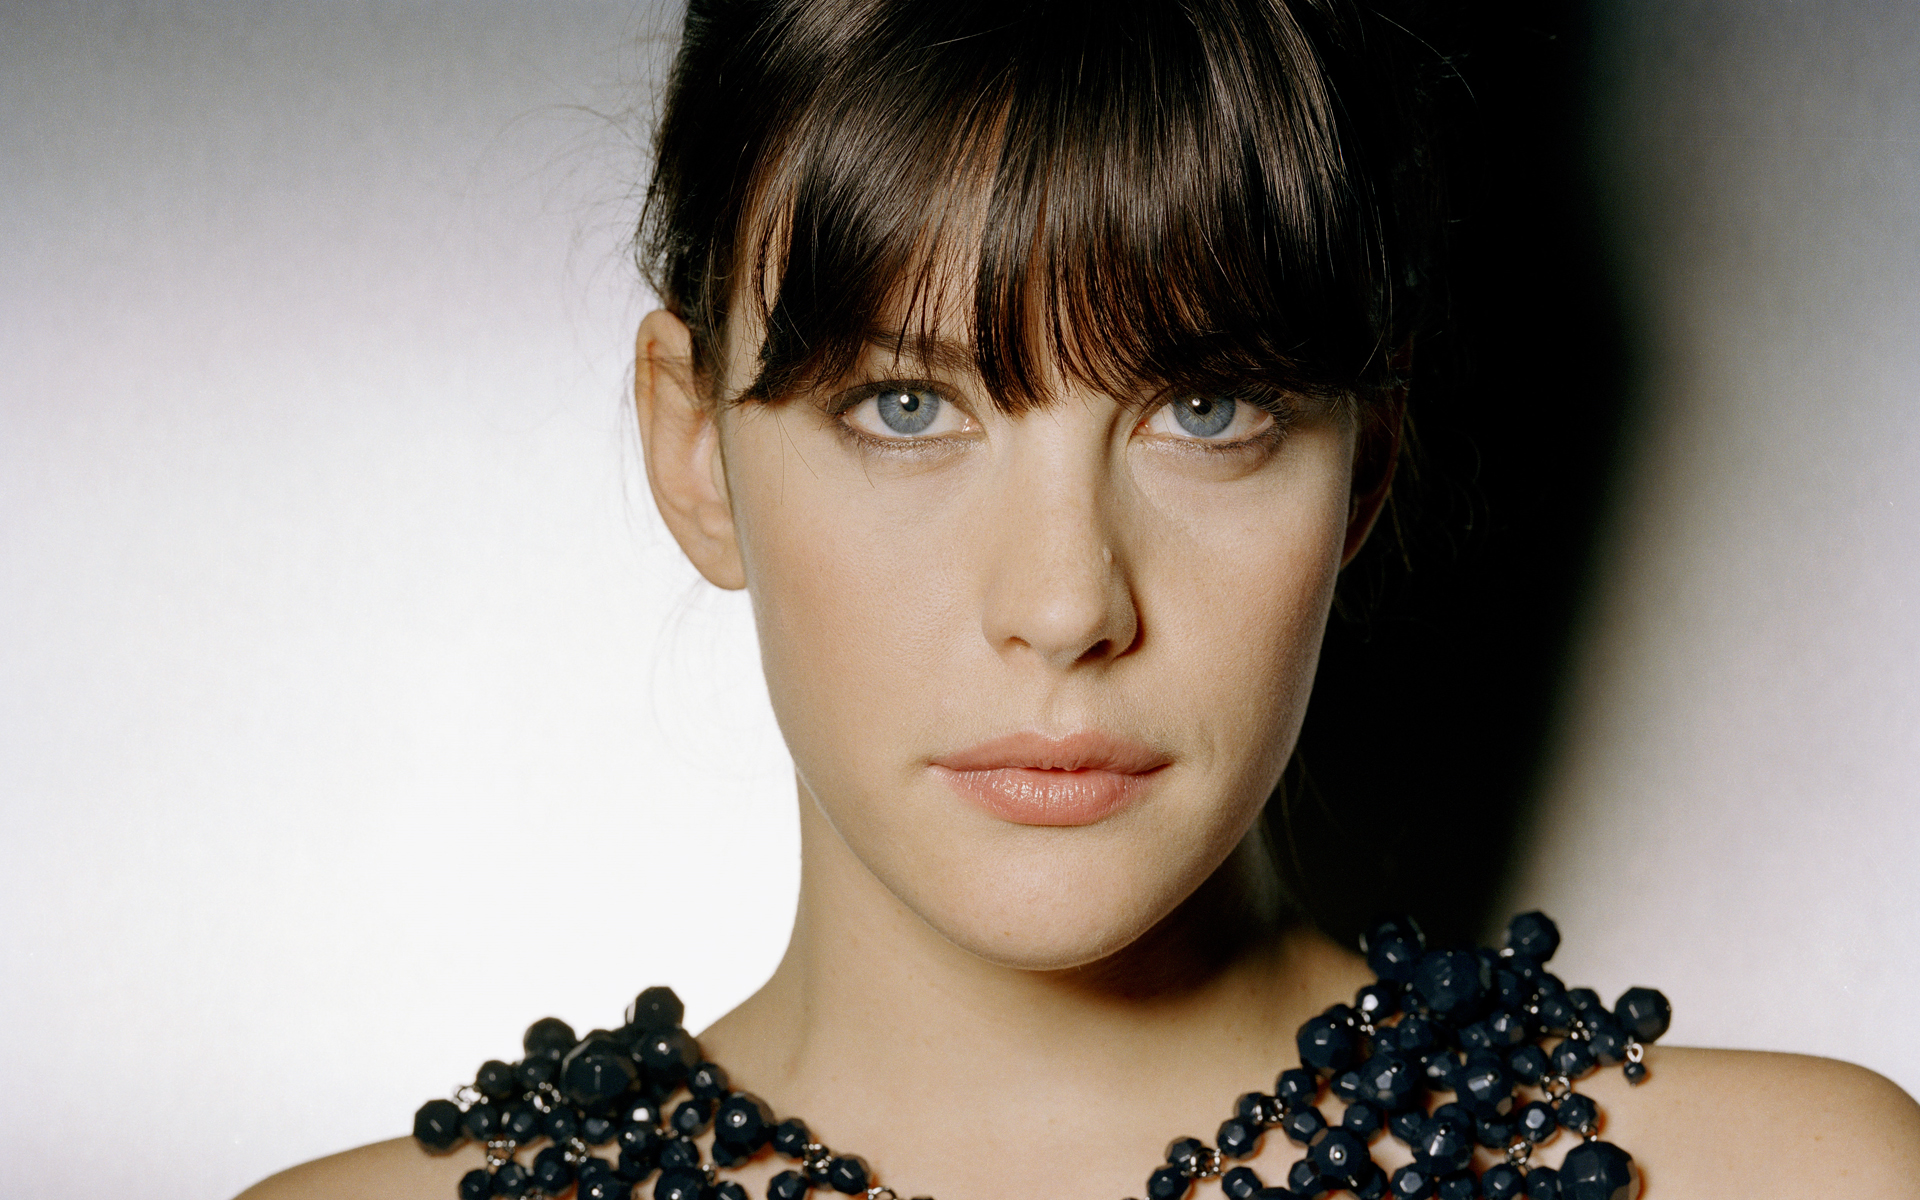 Image for PC: Liv Tyler Wallpapers and Image